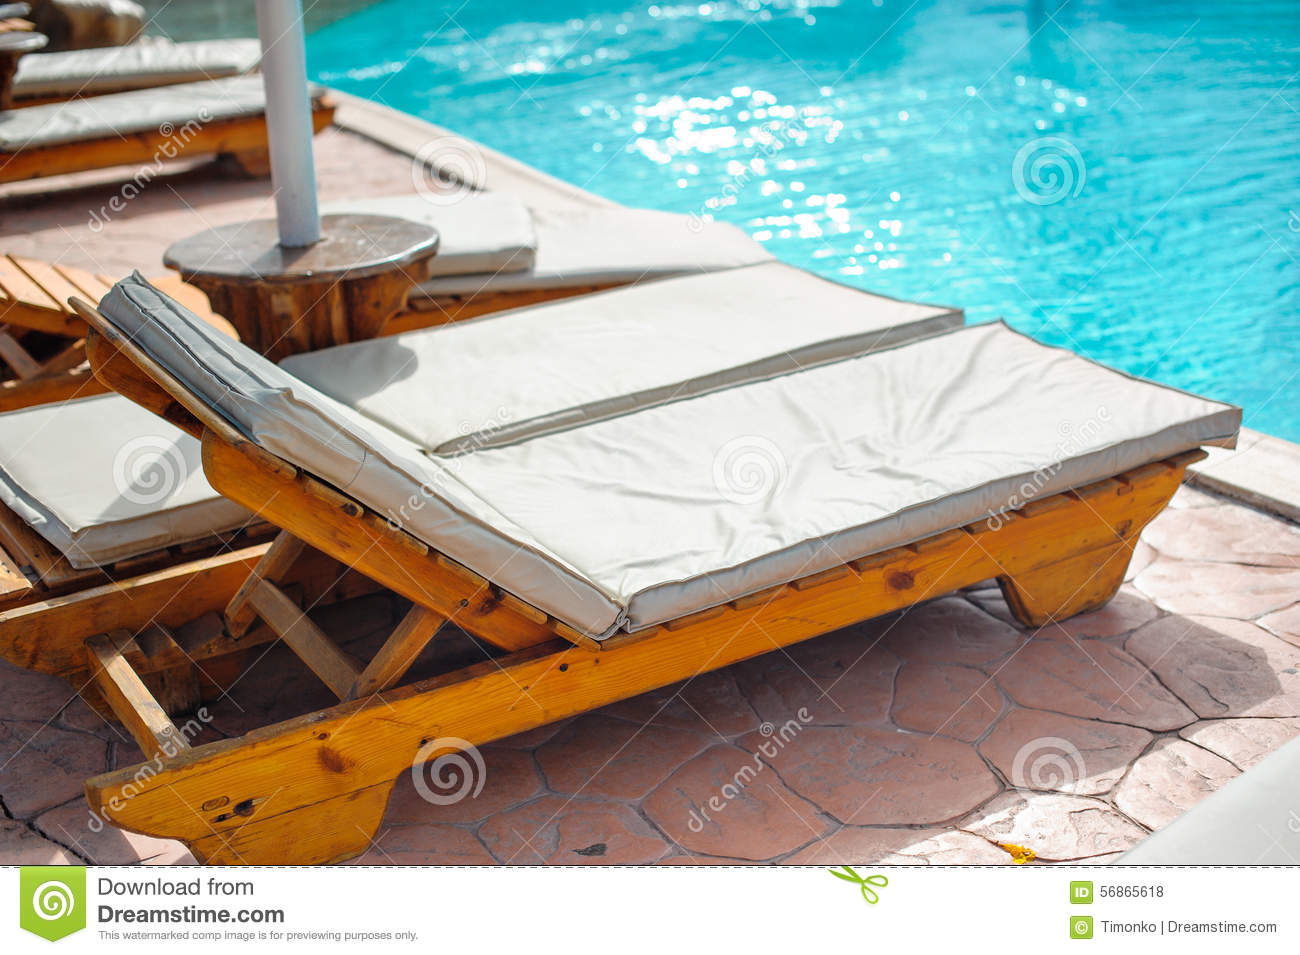 Pool Beds wooden bed beside the pool stock photo - image: 56865618